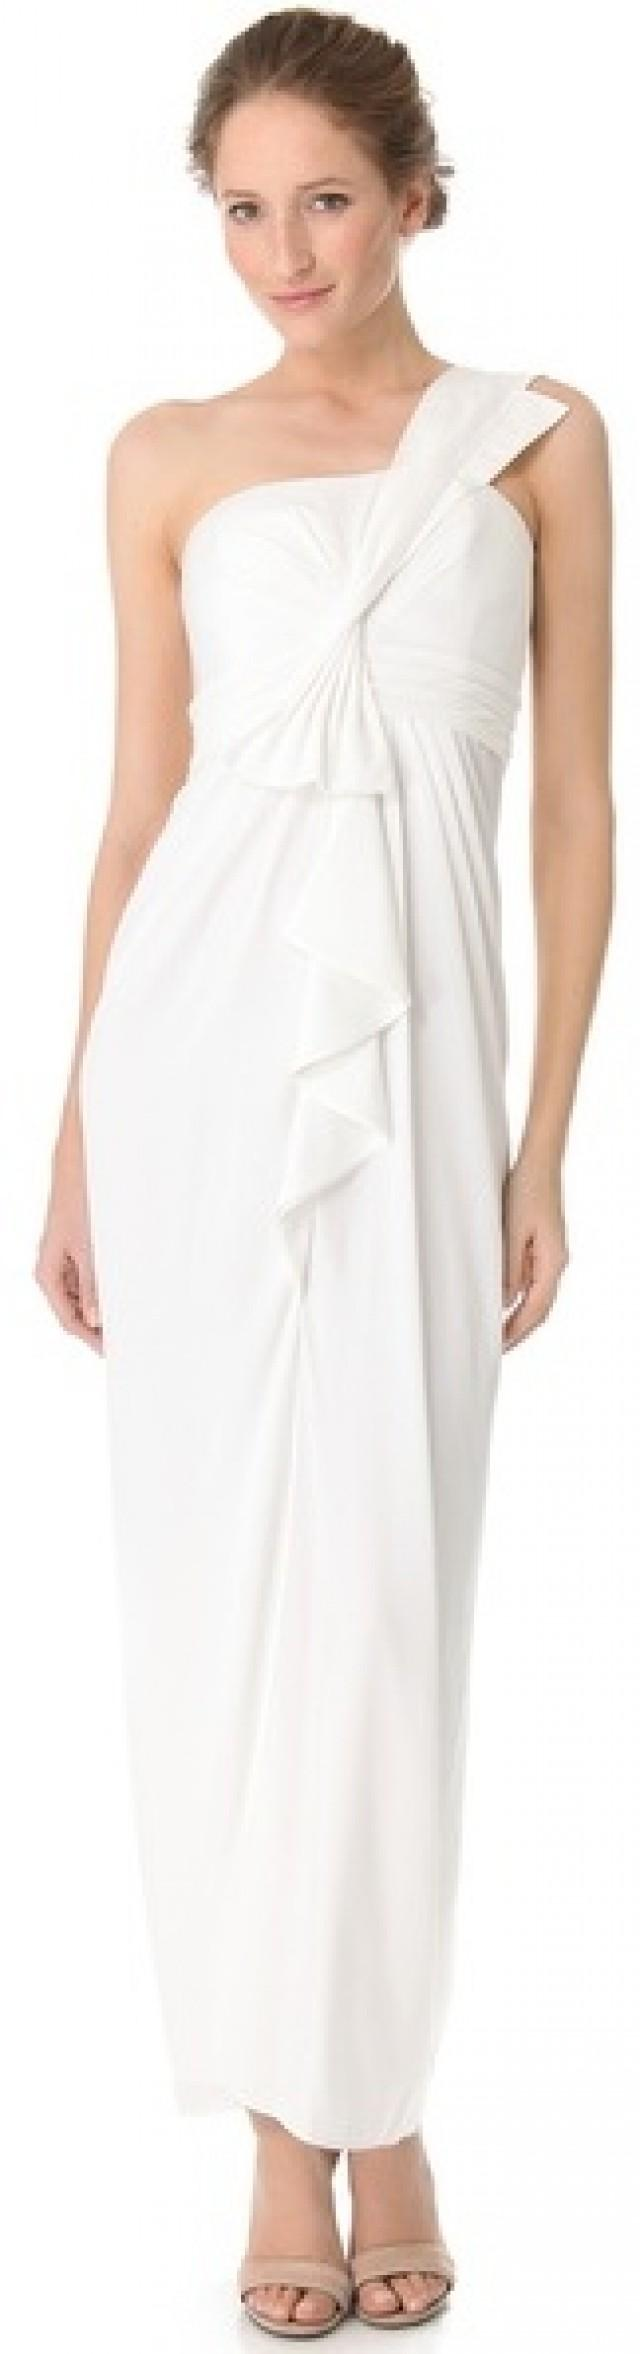 One shoulder dresses are here to stay. They are really stylish and make women look beautiful and sensual by showing a little more skin than a traditional strappy dress. You can wear them for important events, evening parties and even for a casual look on sunny summer days - it all depends on the type of dress you choose.